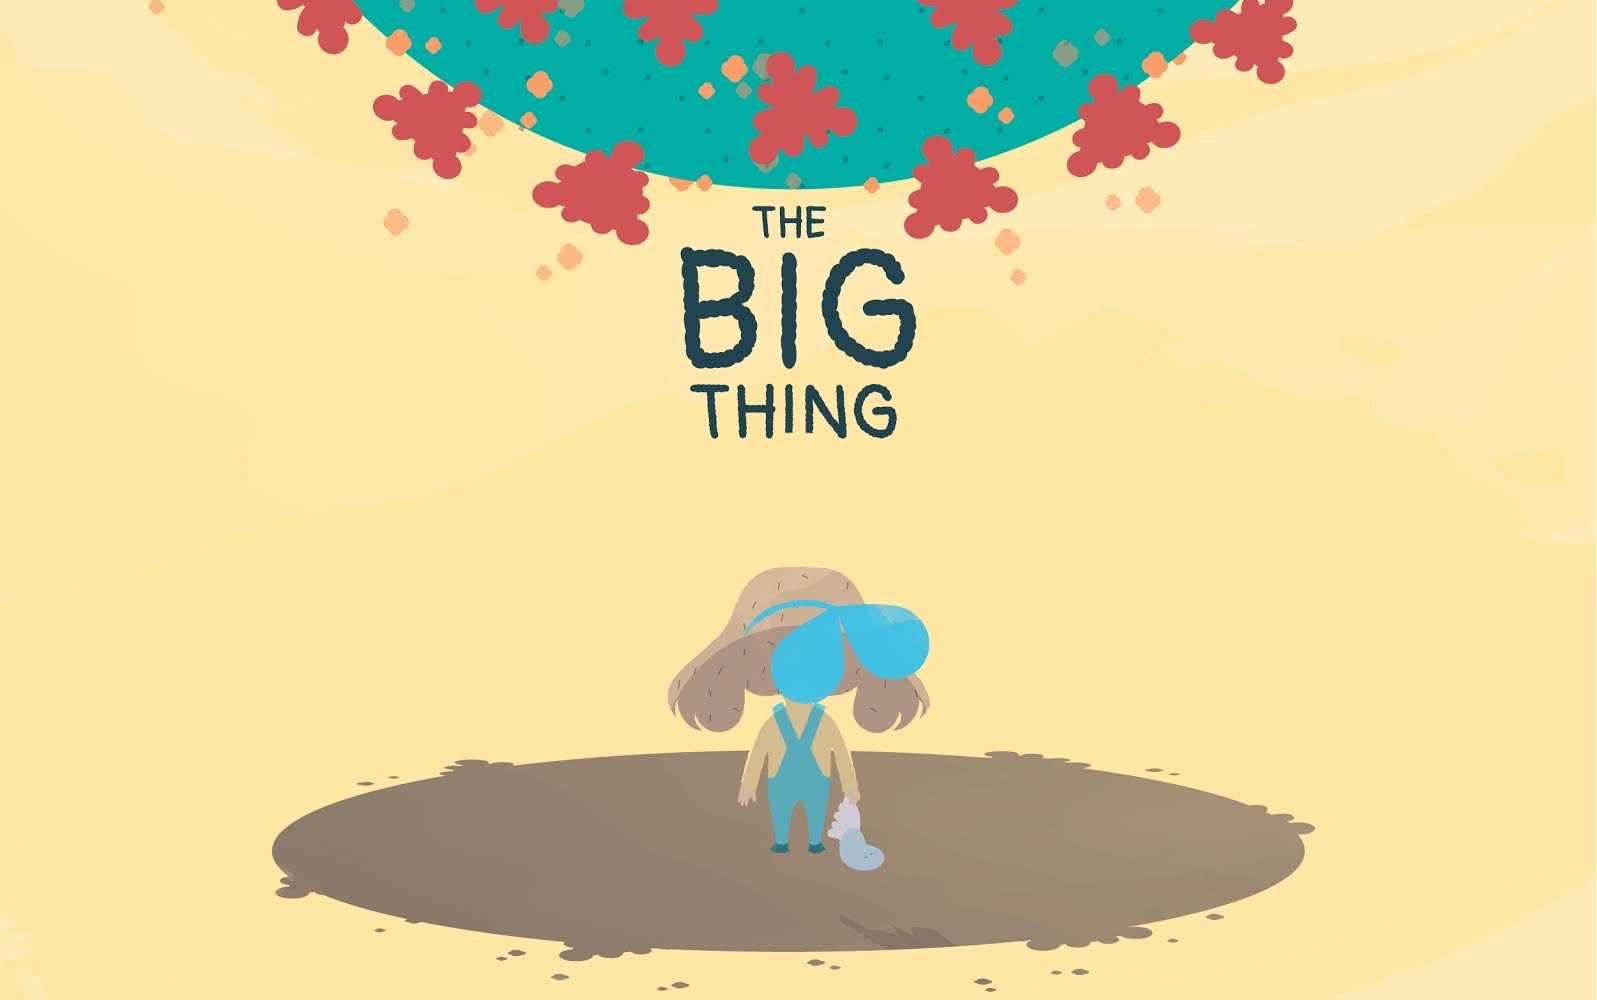 We are so excited about The Big Thing, a new children's book that explains the Covid-19